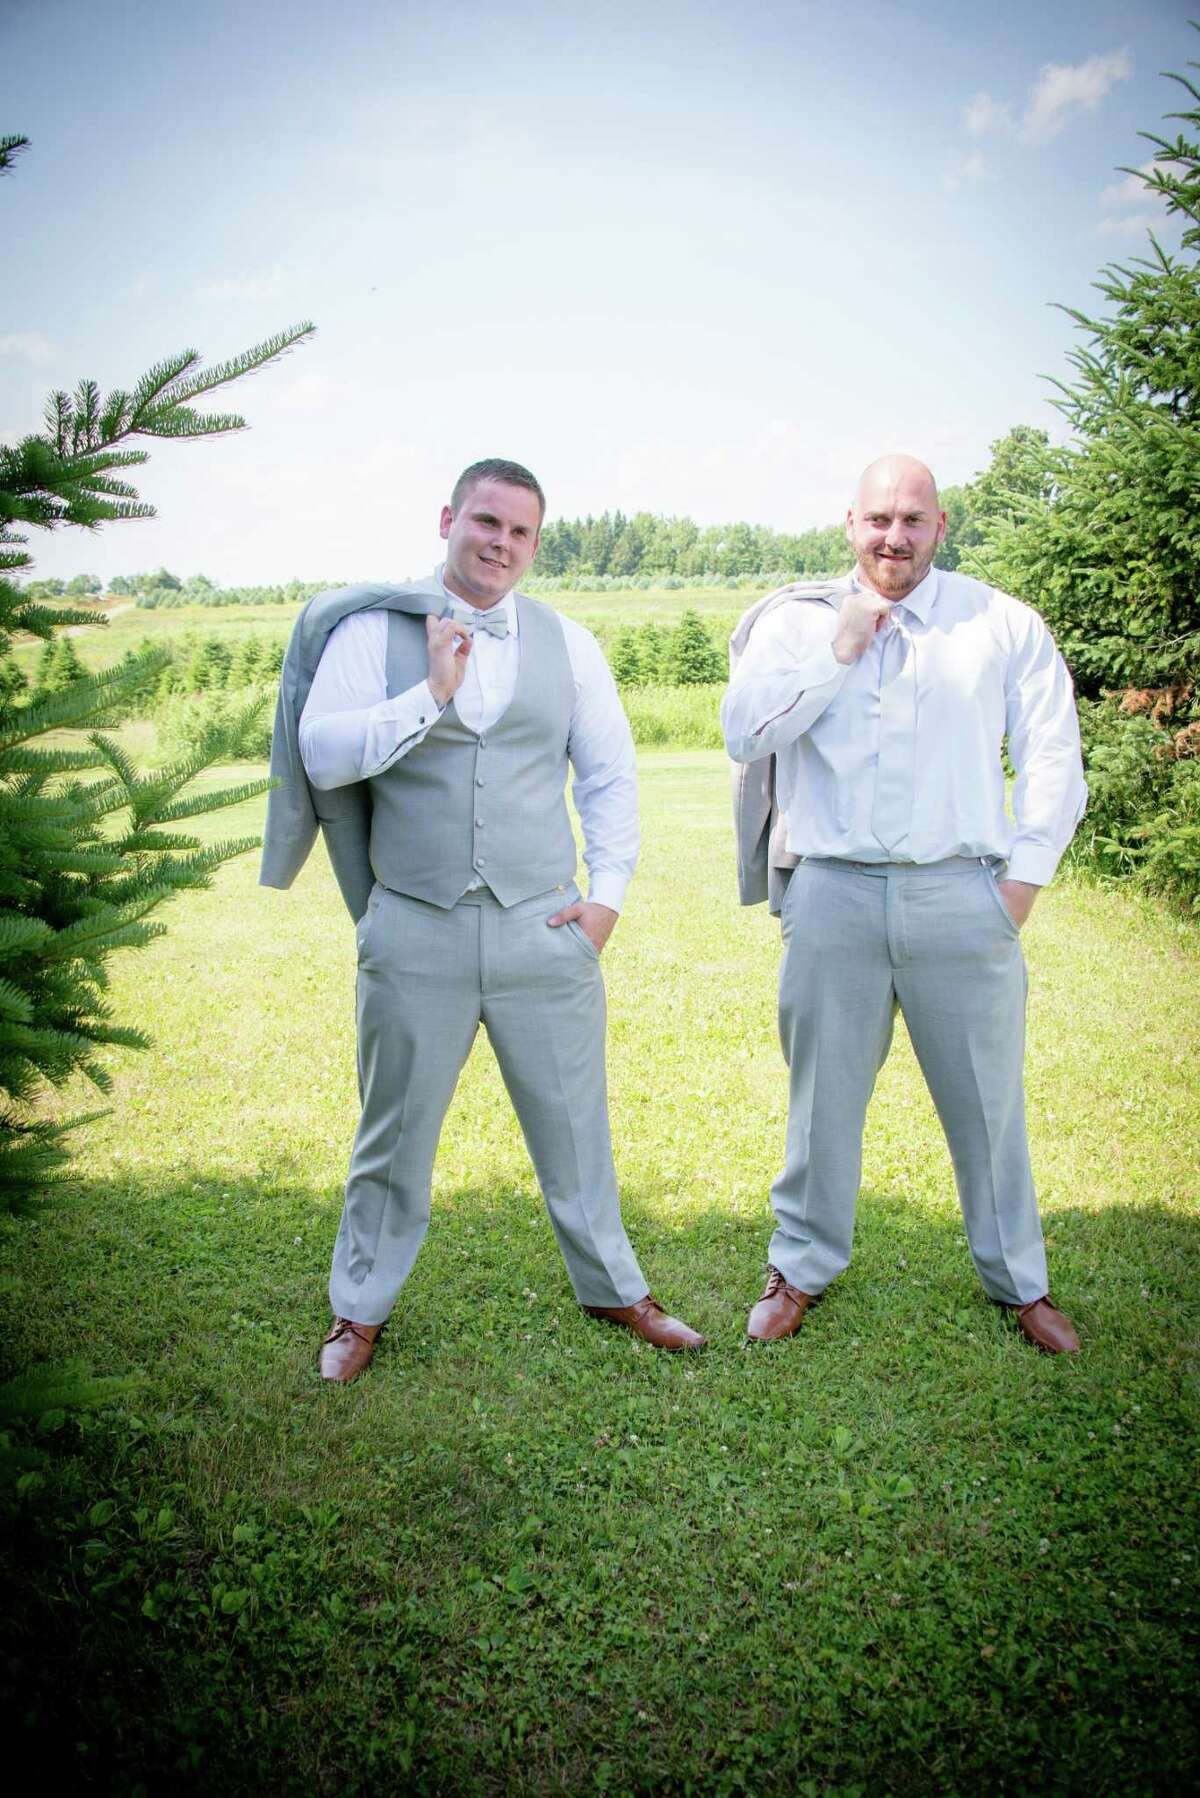 Brothers Axel and Rich Steenburg were both killed in a limo crash in Schoharie on Oct. 6, 2018. Here they are pictured on Axel?'s wedding day on June 30, 2018.